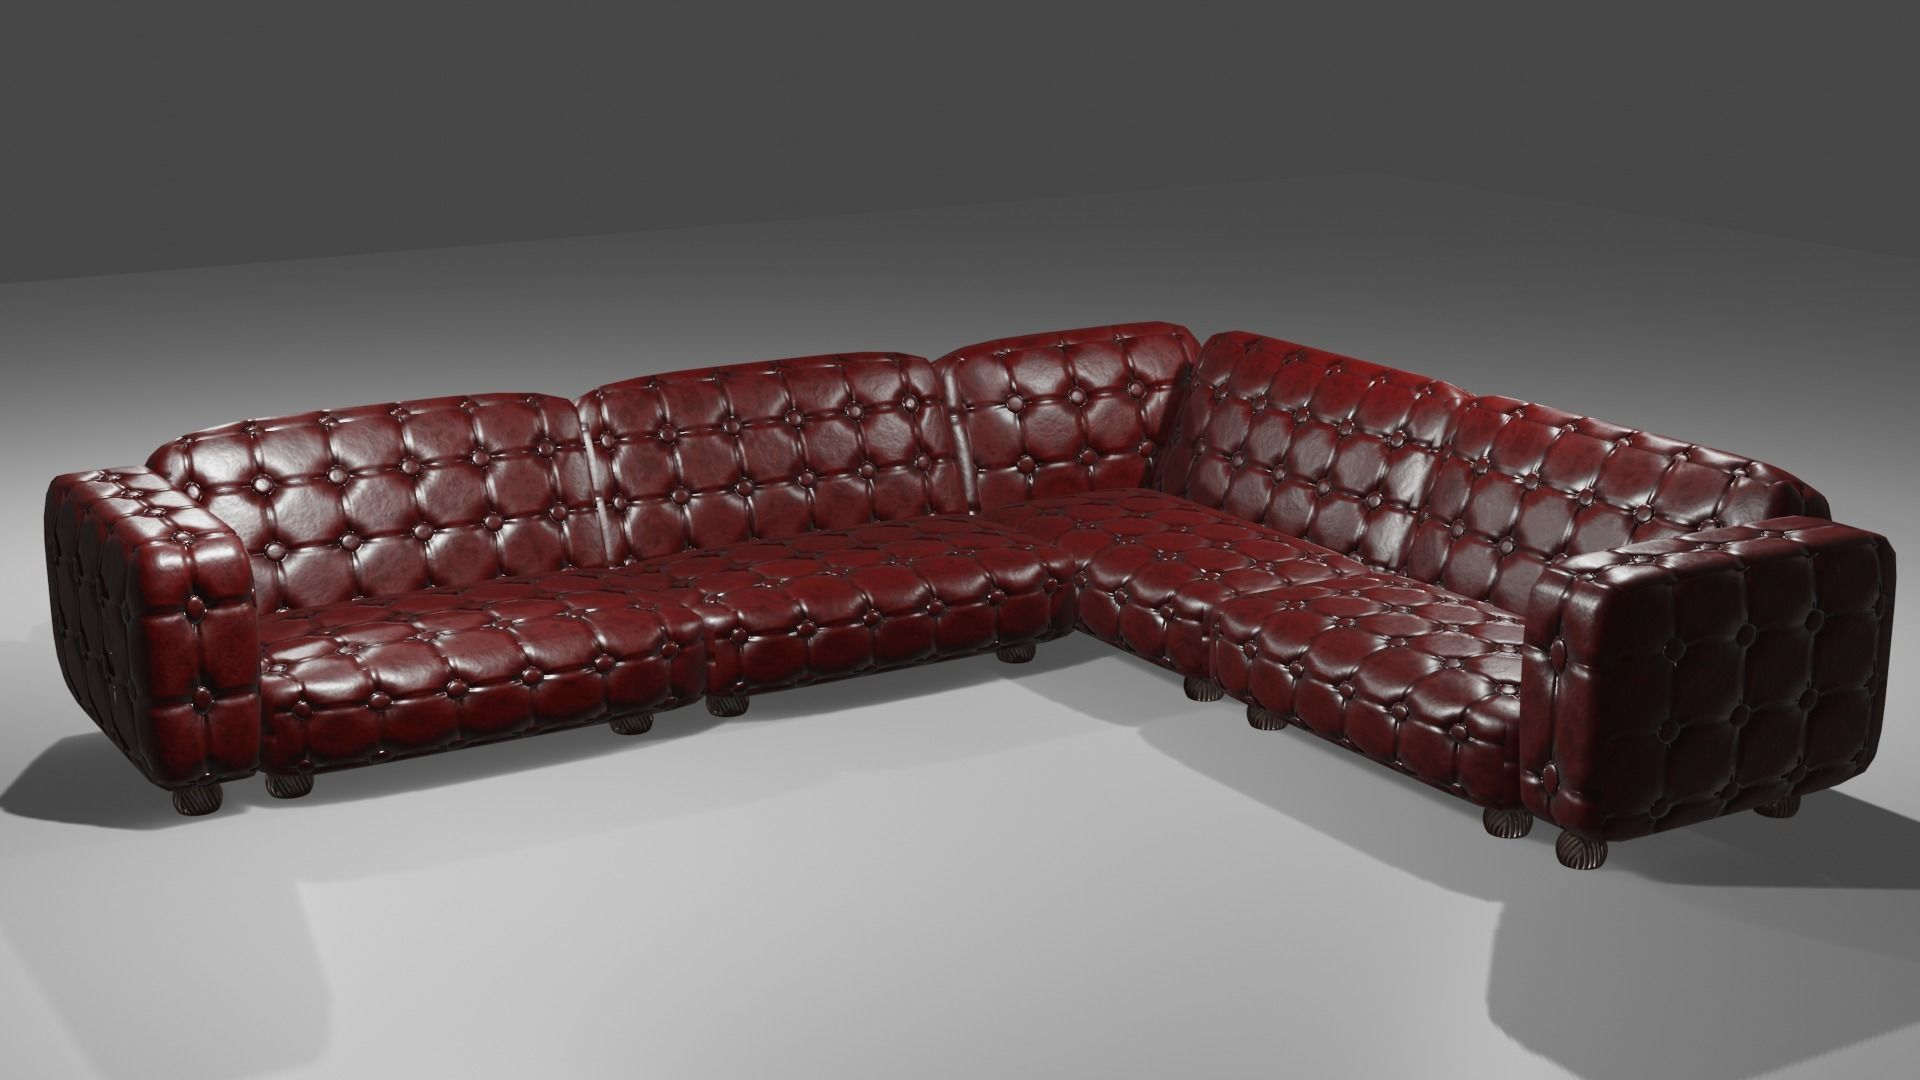 Phenomenal Game Ready Dark Brown Red Leather Sofa Couch 3D Model 3D Model Dailytribune Chair Design For Home Dailytribuneorg